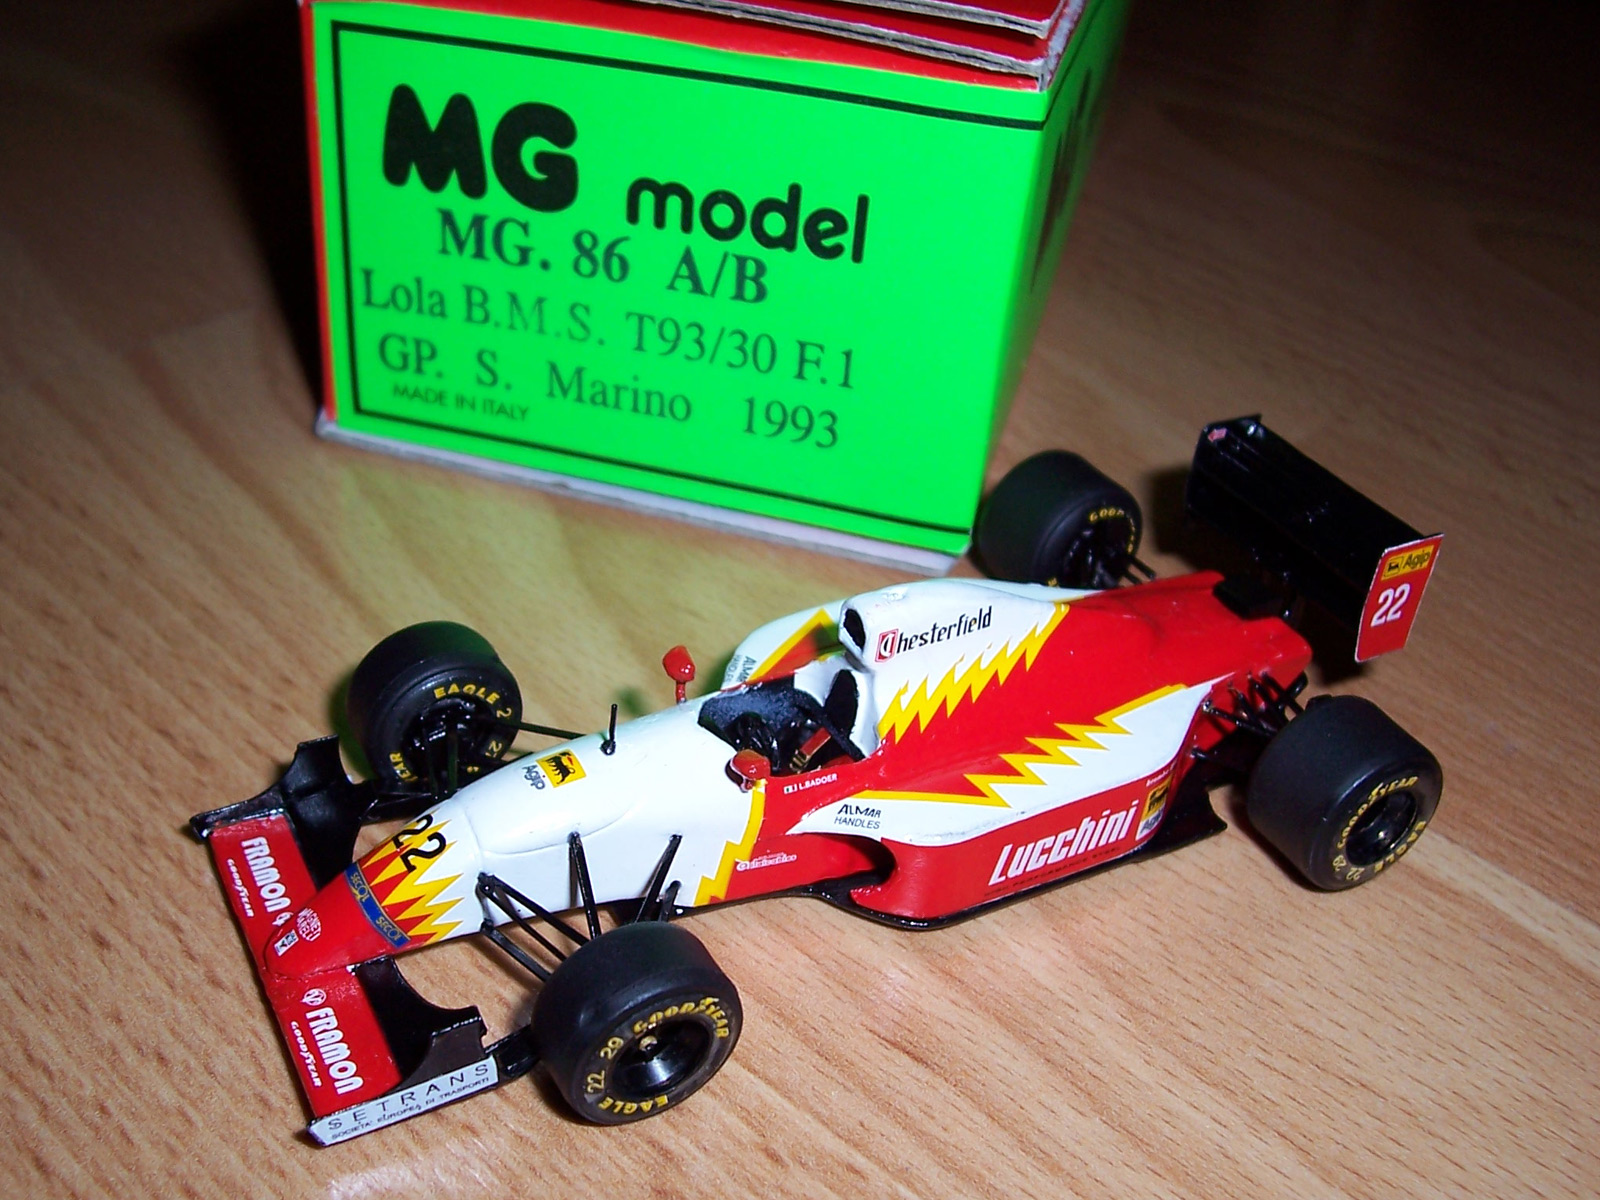 Mg model made a 1 43 scale version